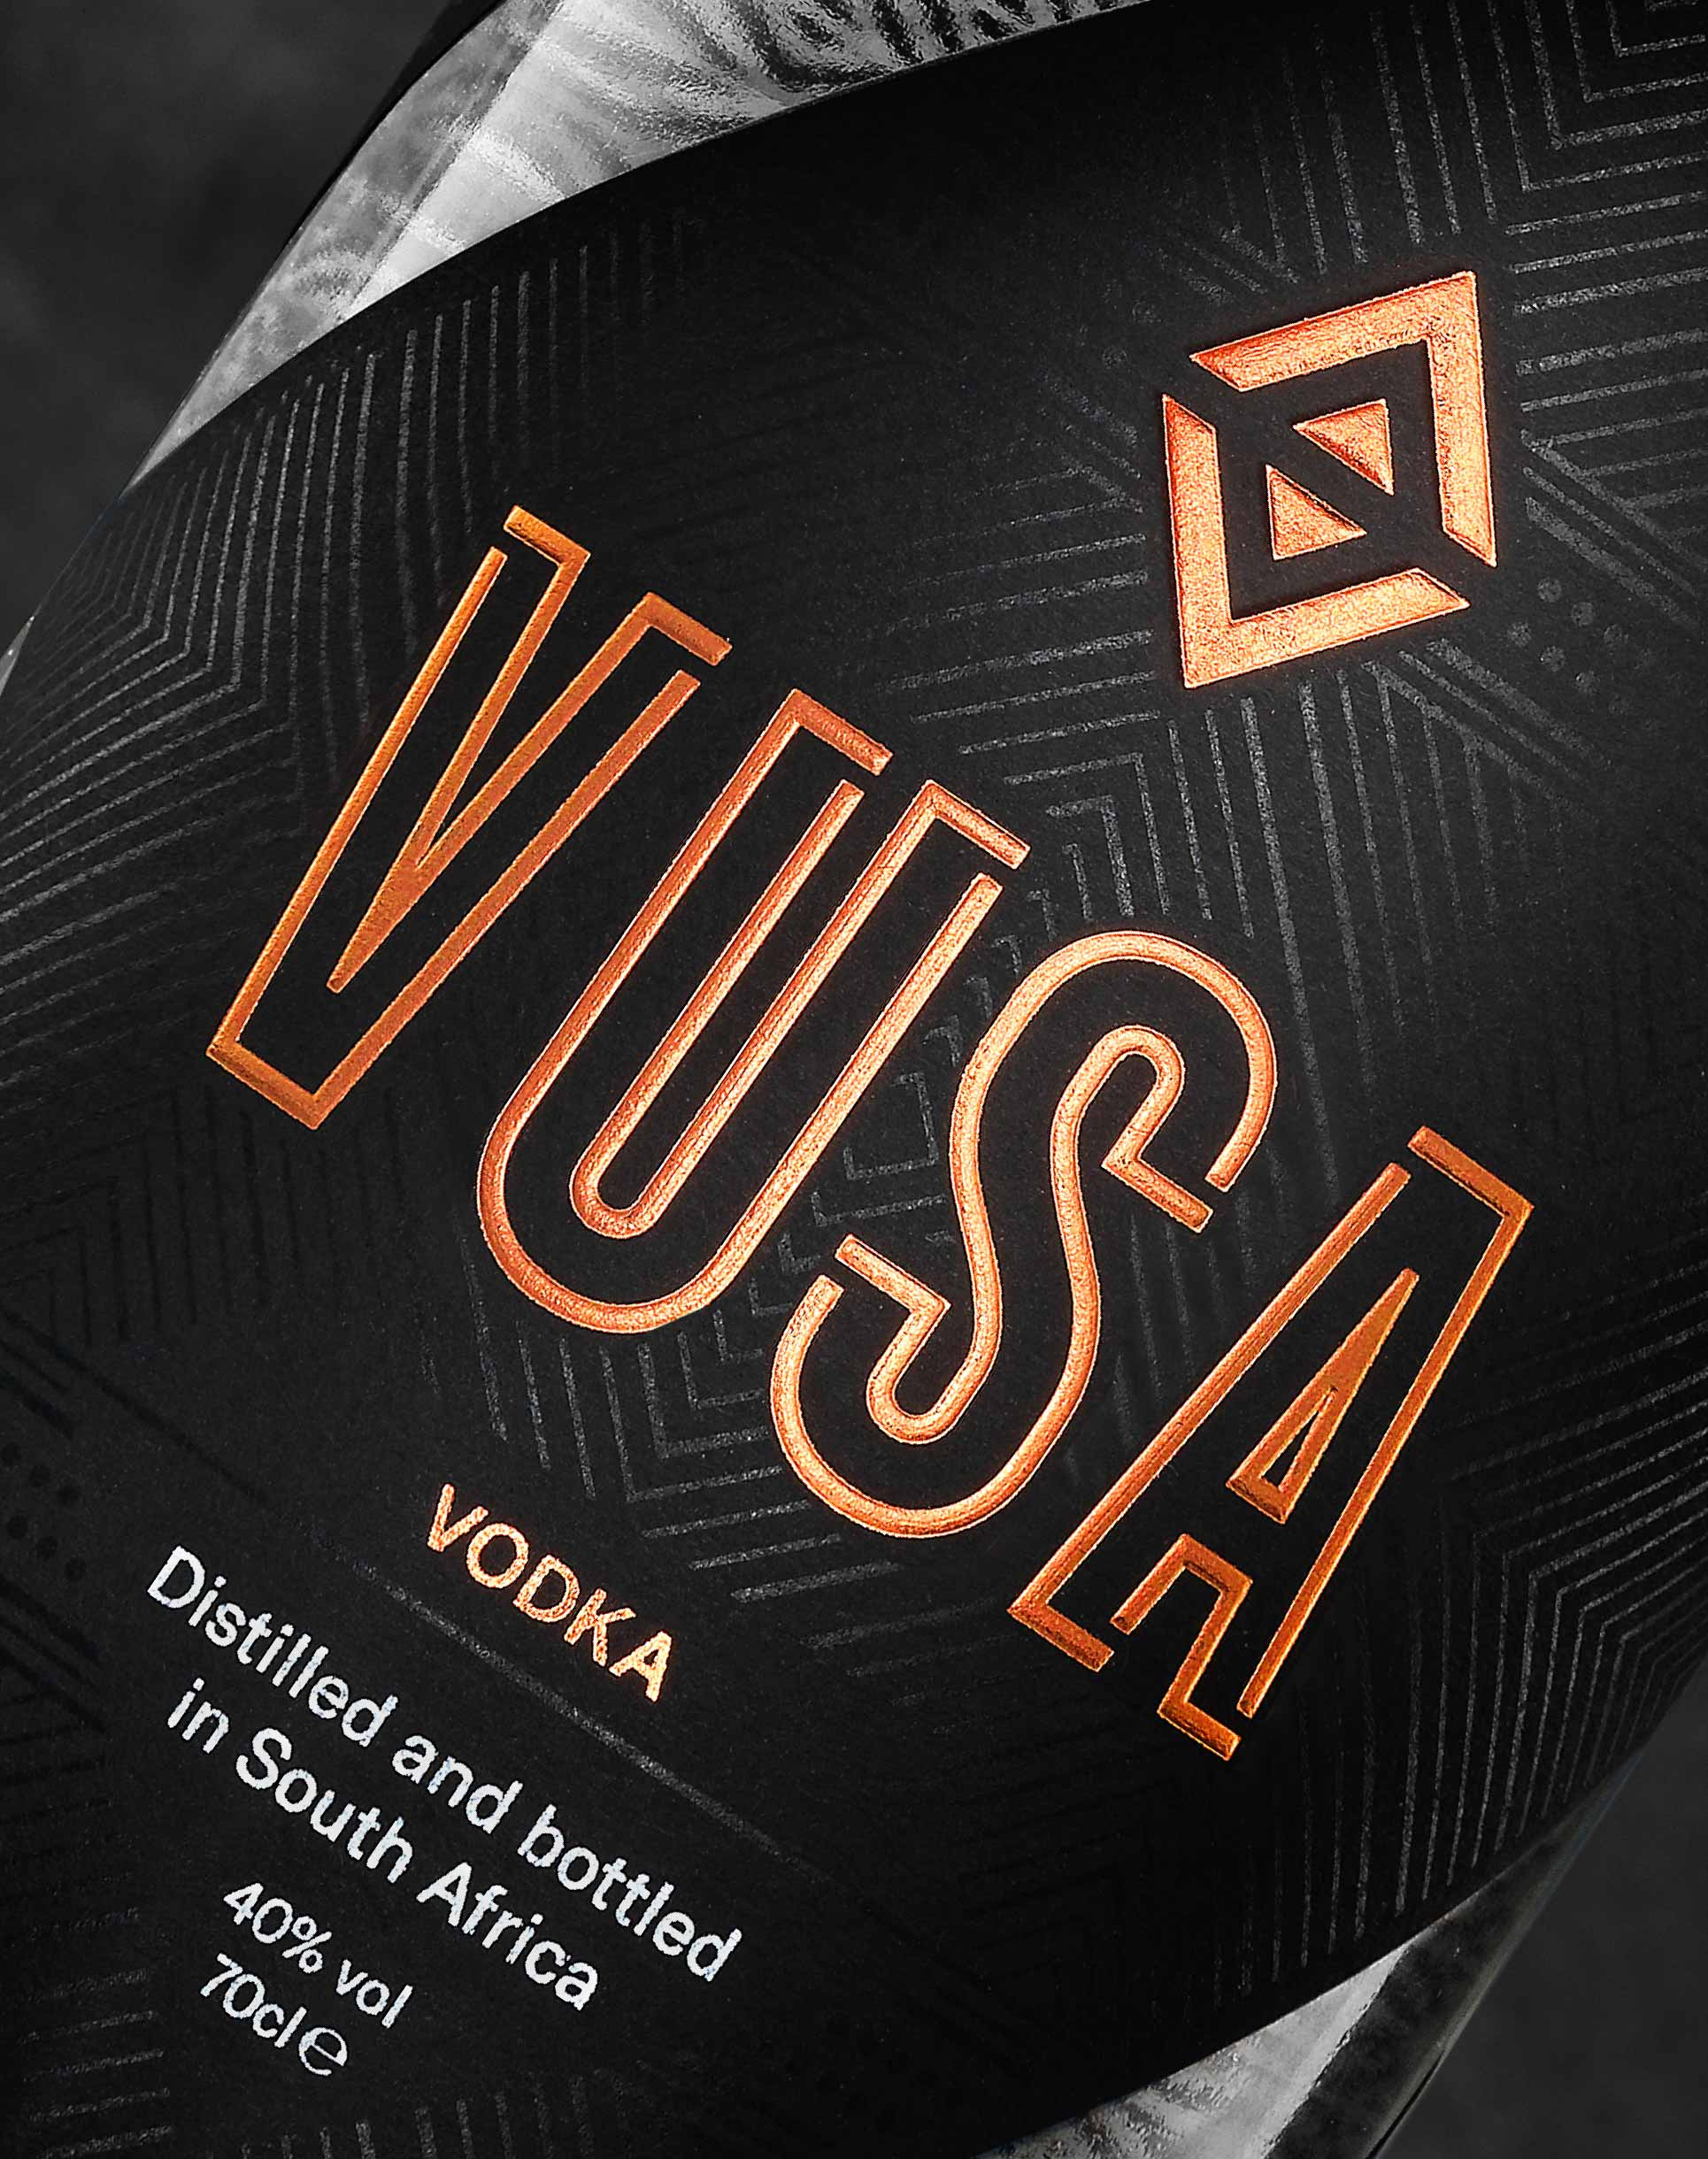 Close up view of Vusa bottle